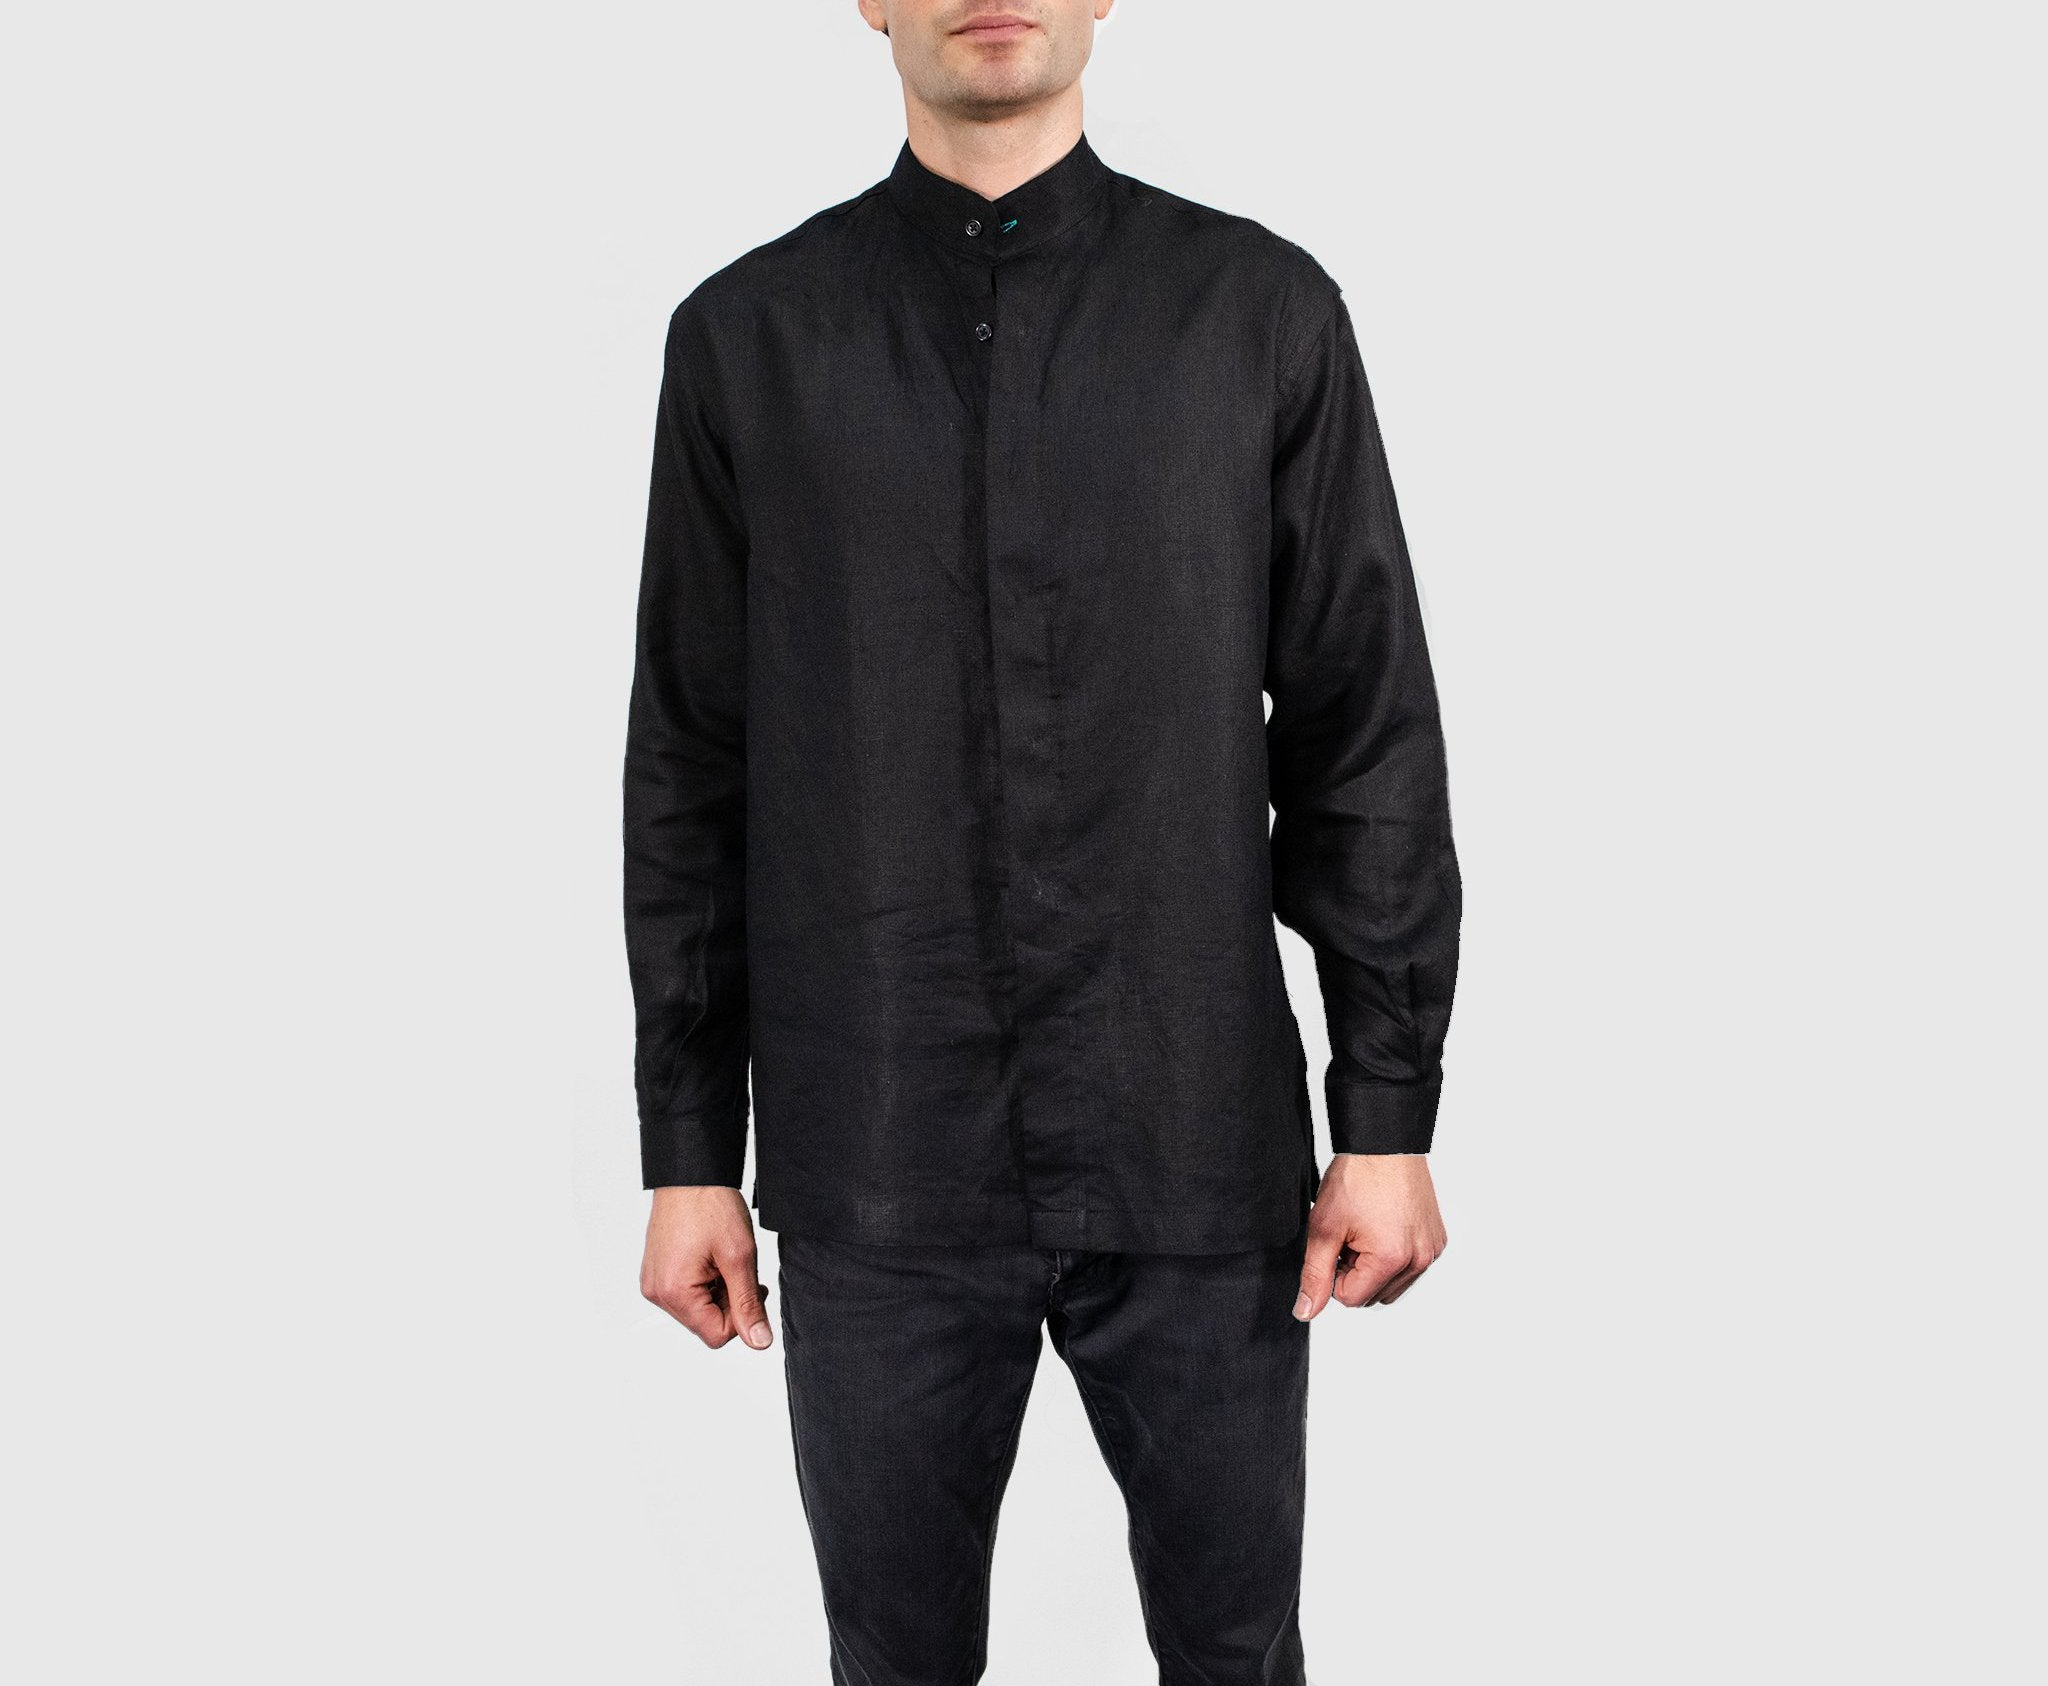 Ferdinand - Black Band Collar Shirt